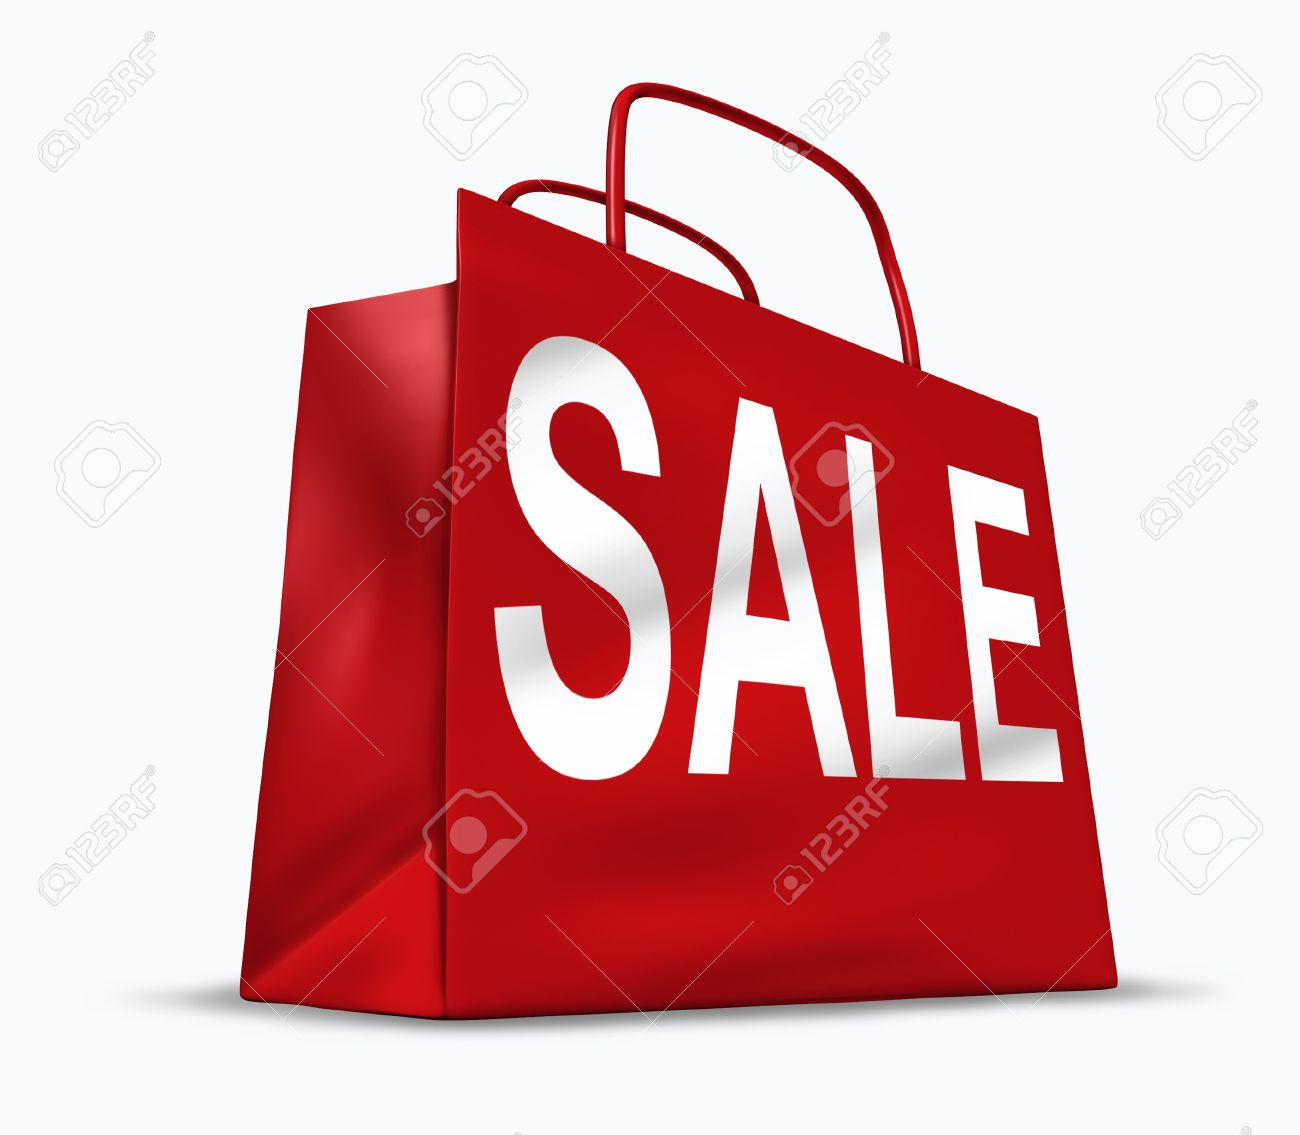 Red shopping bag with the word sale on it representing the concept of retail consumers and shoppers looking for bargains and low prices at the mall or department stores.. Stock Photo - 10945903